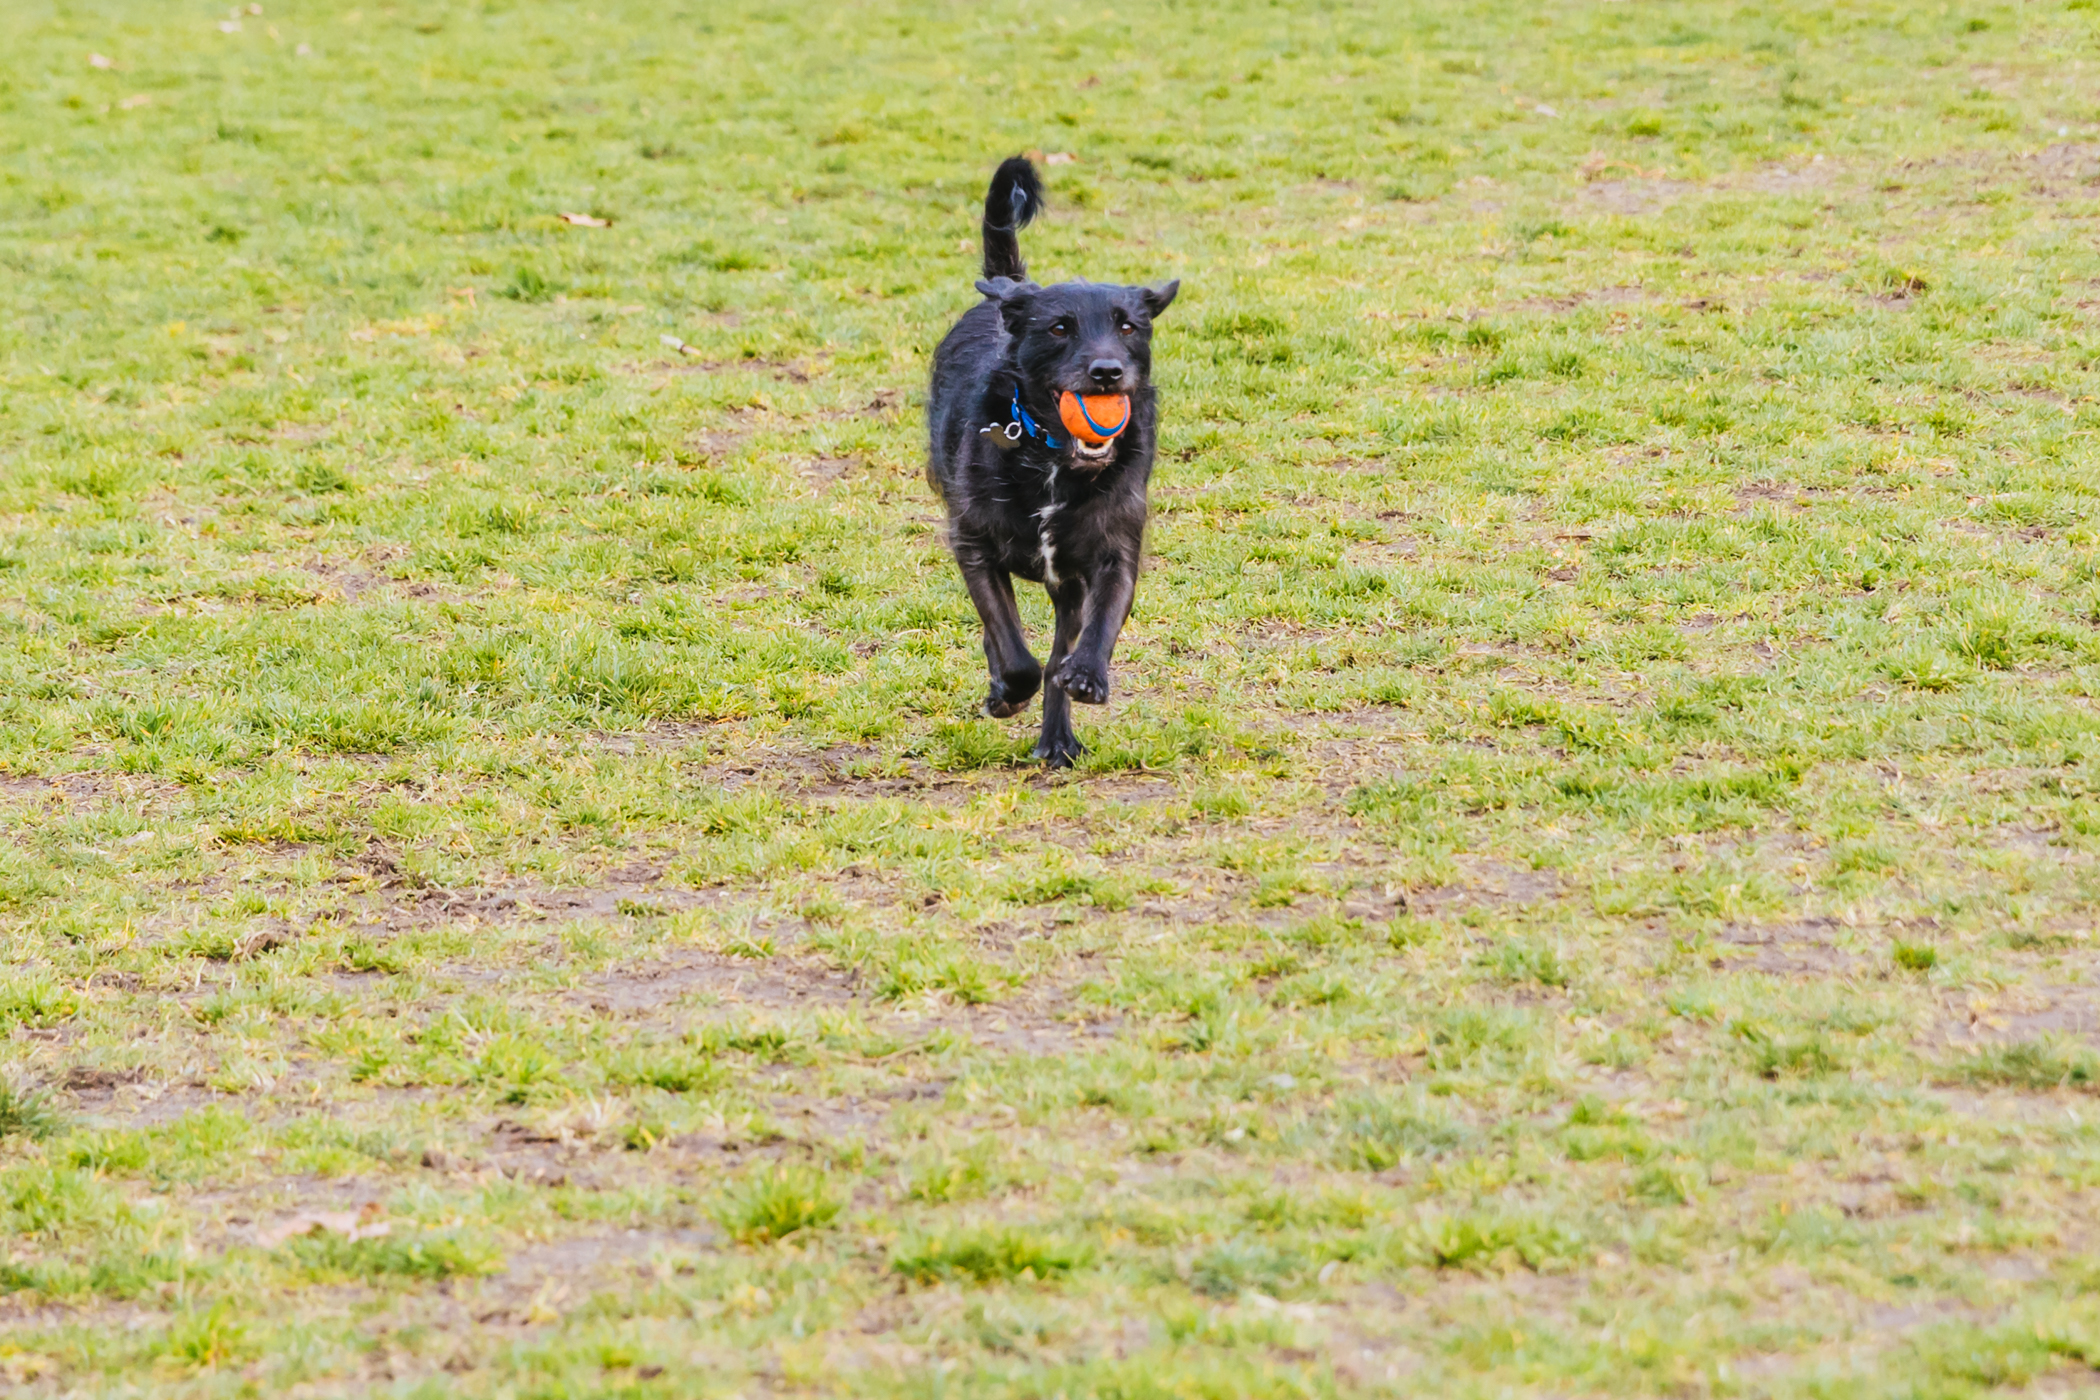 "Toby is a 4-year-old terrier mix who spent{&nbsp;}his early years roaming the streets of Guadalajara, Mexico.{&nbsp;}After relocating to Seattle in the summer of 2020 thanks to the good folks at Three Little Pitties, he settled into his new life in Ballard.{&nbsp;}While he may be very calm and patient (when waiting for treats), he loves to tear it up at the park chasing his ball. Toby likes chasing squirrels, camping and long hikes in the woods but isn't a fan of not being first to get the ball while playing fetch.{&nbsp;}<a  href=""http://seattlerefined.com/ruffined"" target=""_blank"" title=""http://seattlerefined.com/ruffined"">The RUFFined Spotlight</a>{&nbsp;}is a weekly profile of local pets living and loving life in the PNW. If you or someone you know has a pet you'd like featured, email us at{&nbsp;}<a  href=""mailto:hello@seattlerefined.com"" target=""_blank"" title=""mailto:hello@seattlerefined.com"">hello@seattlerefined.com</a>, and your furbaby could be the next spotlighted! (Image: Sunita Martini / Seattle Refined)"